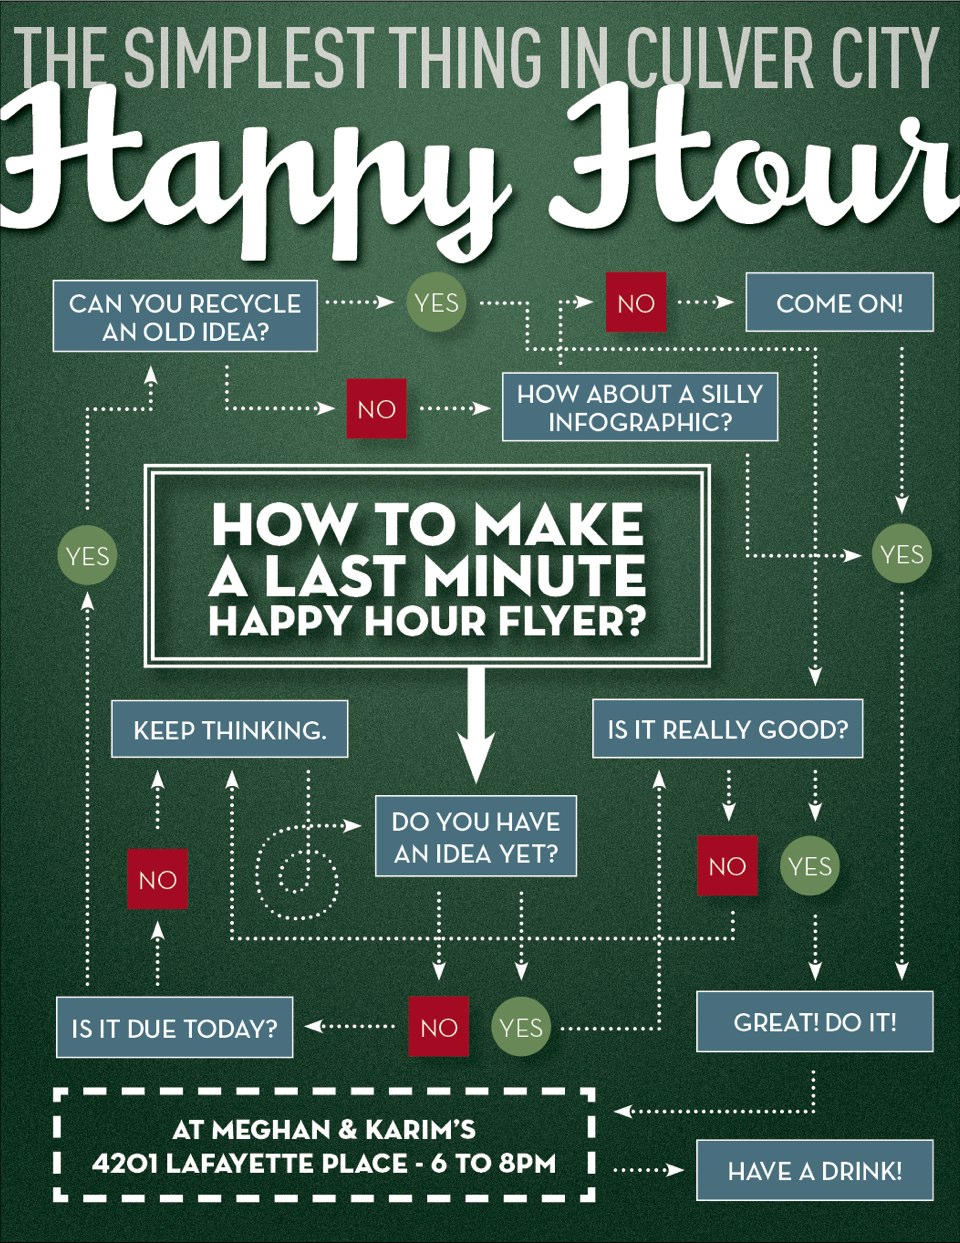 HappyHour_Infographic_2013_12_20__13h14-3.jpg